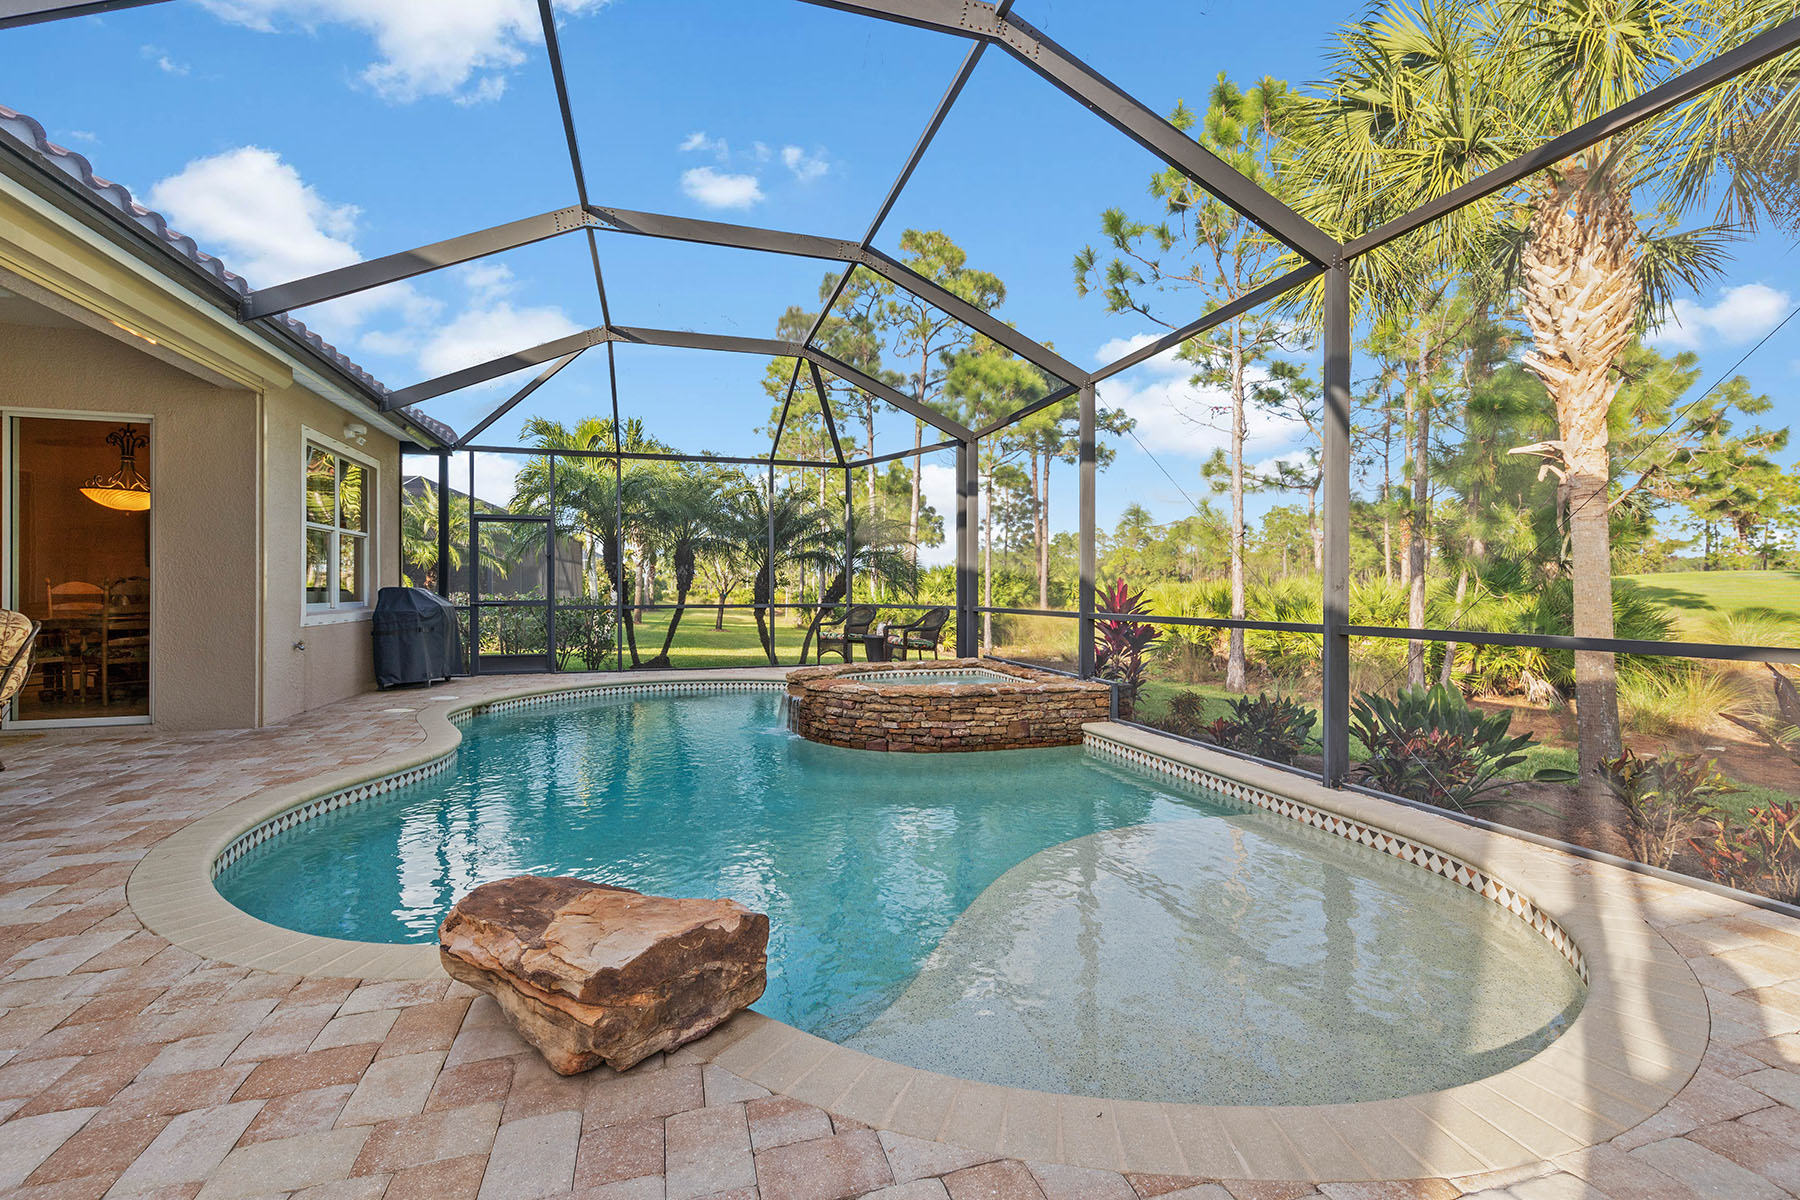 Single Family Homes for Sale at THE PLANTATION - SOMERSET 13115 Simsbury Terrace Fort Myers, Florida 33913 United States